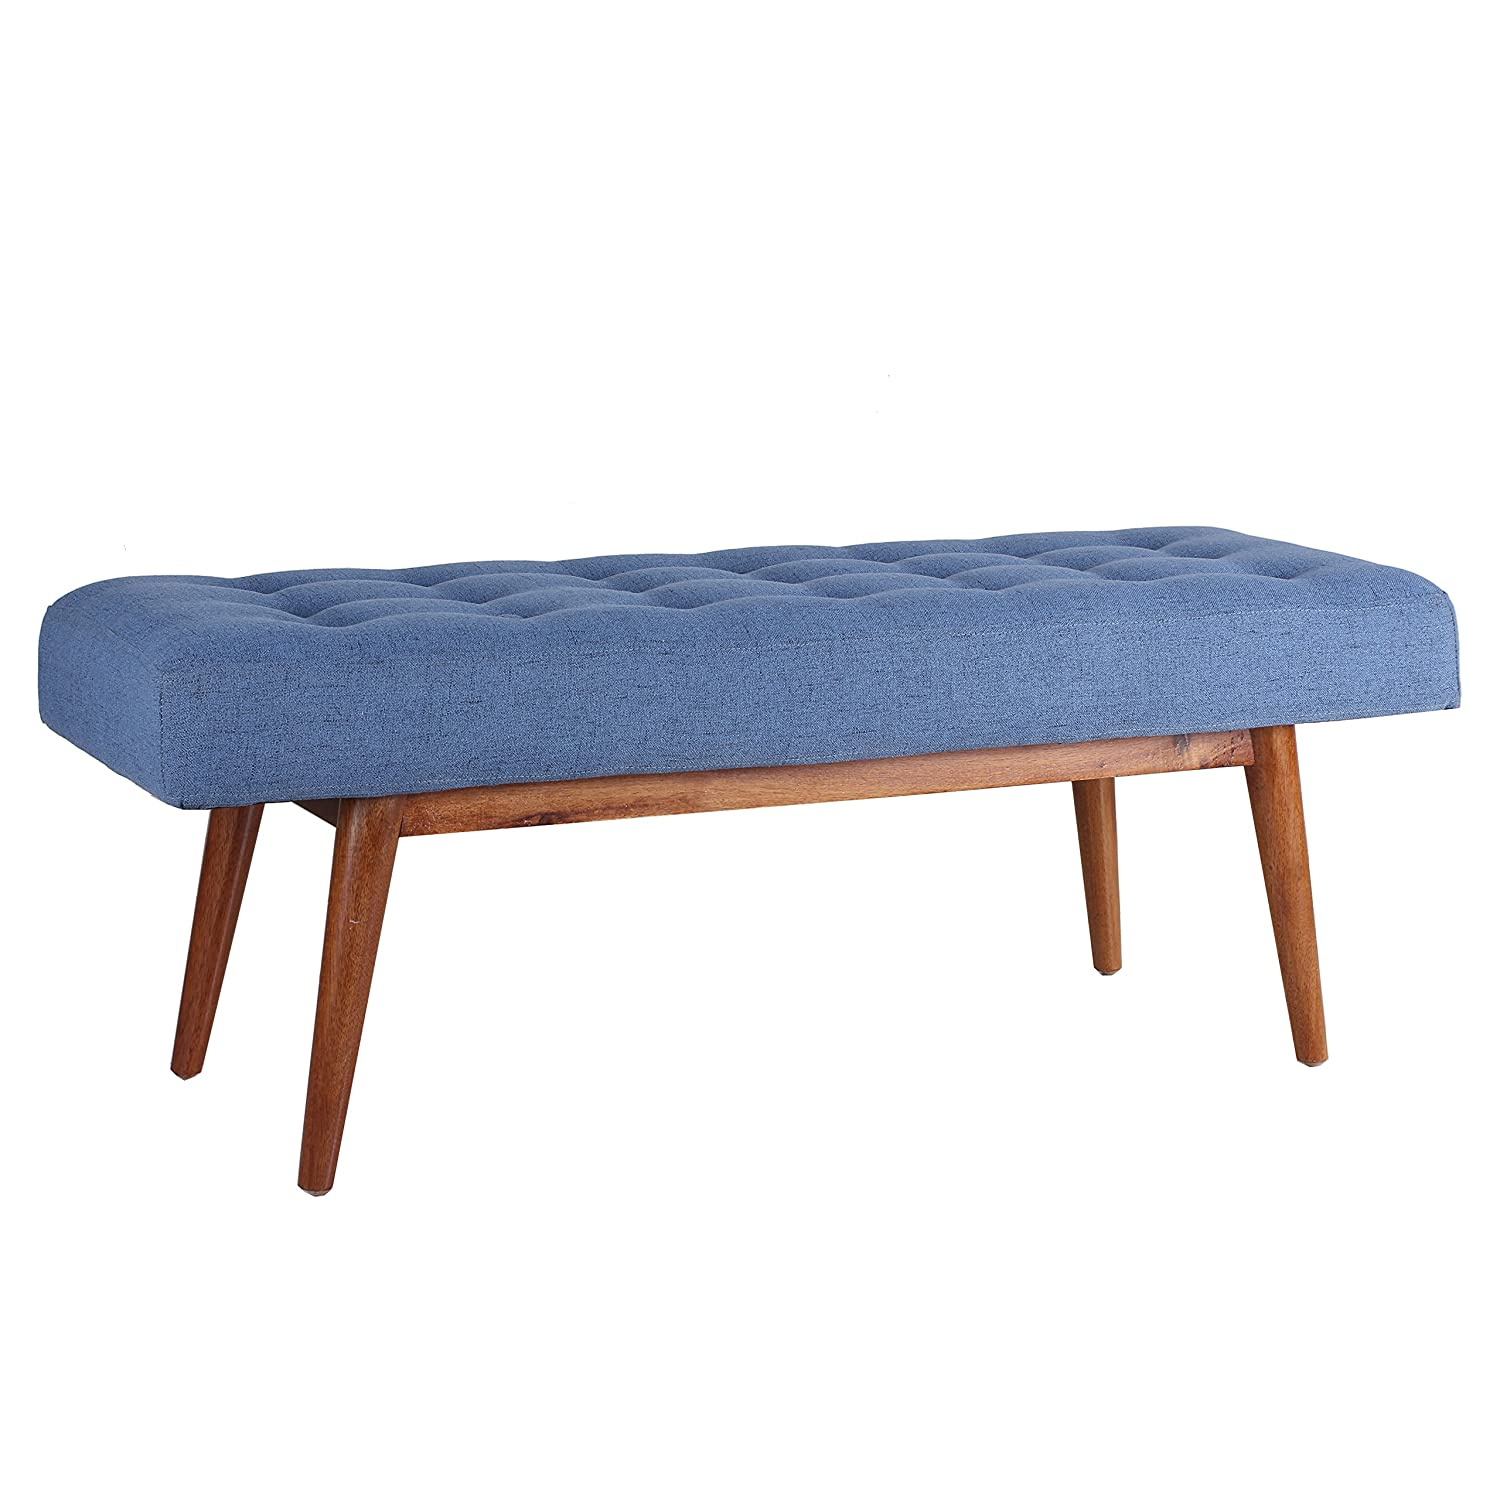 Porthos Home Etheline Side Bench, Blue